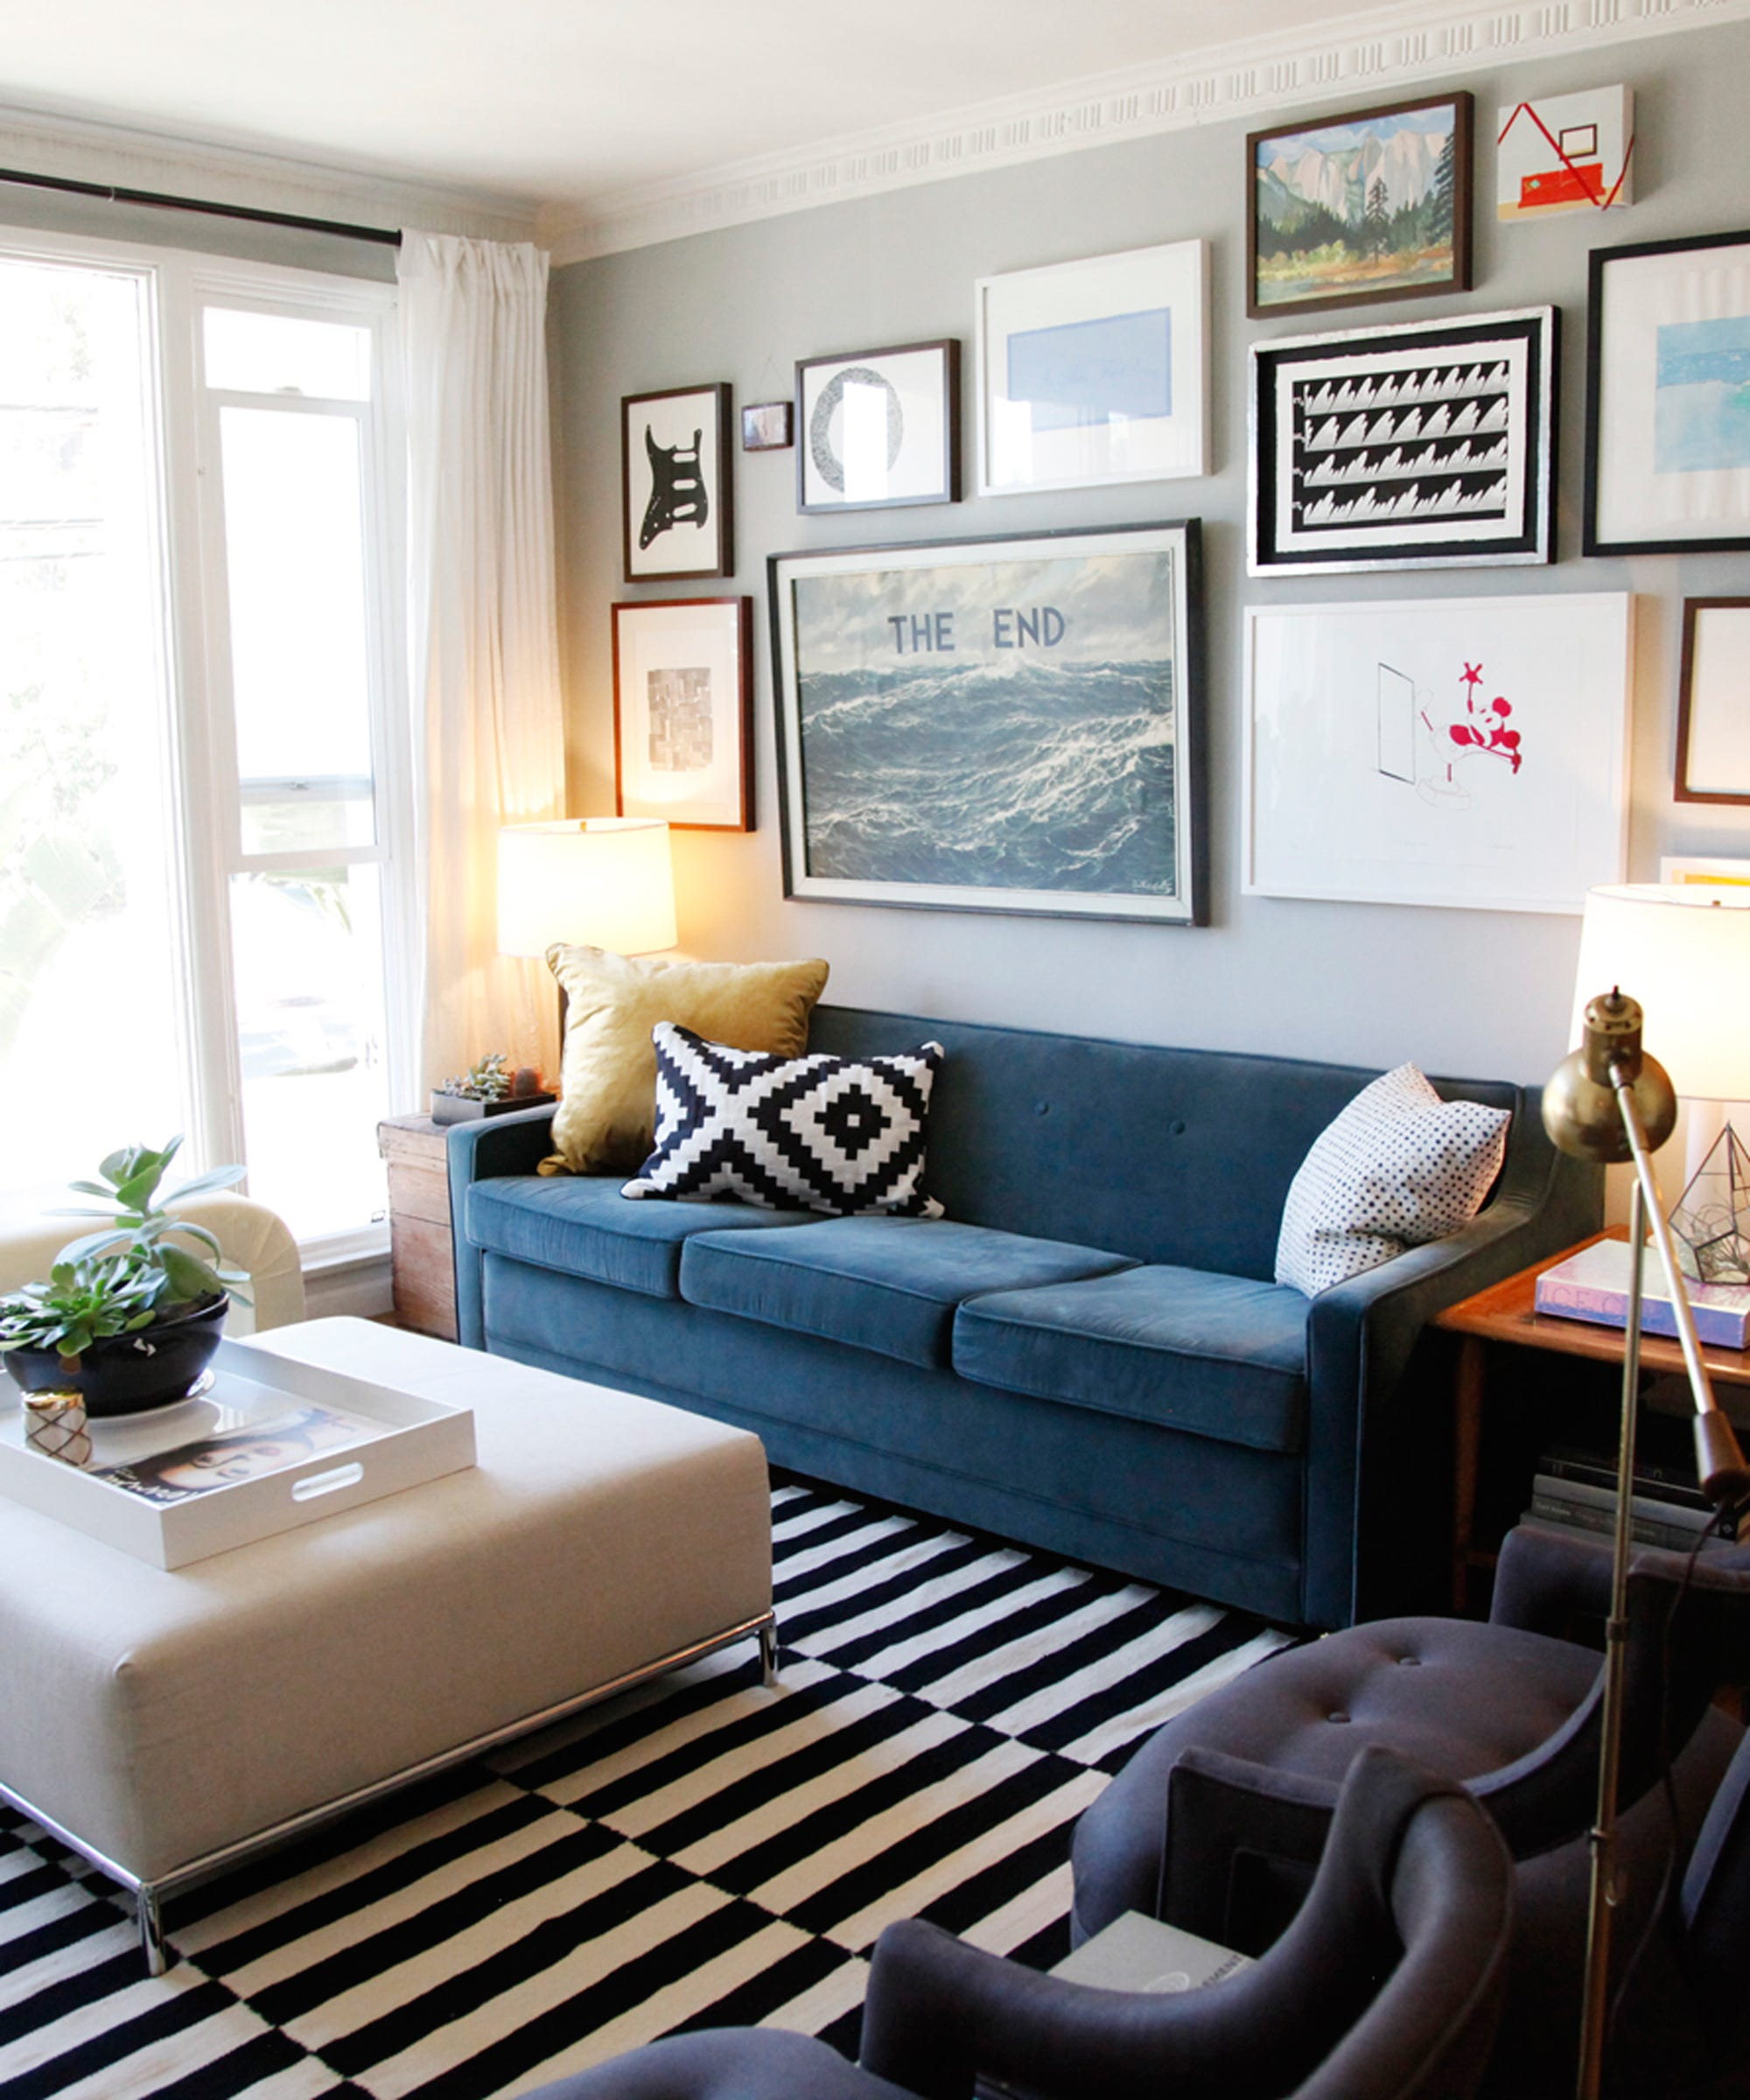 Cheap Home Decor Stores - Best Sites, Retailers